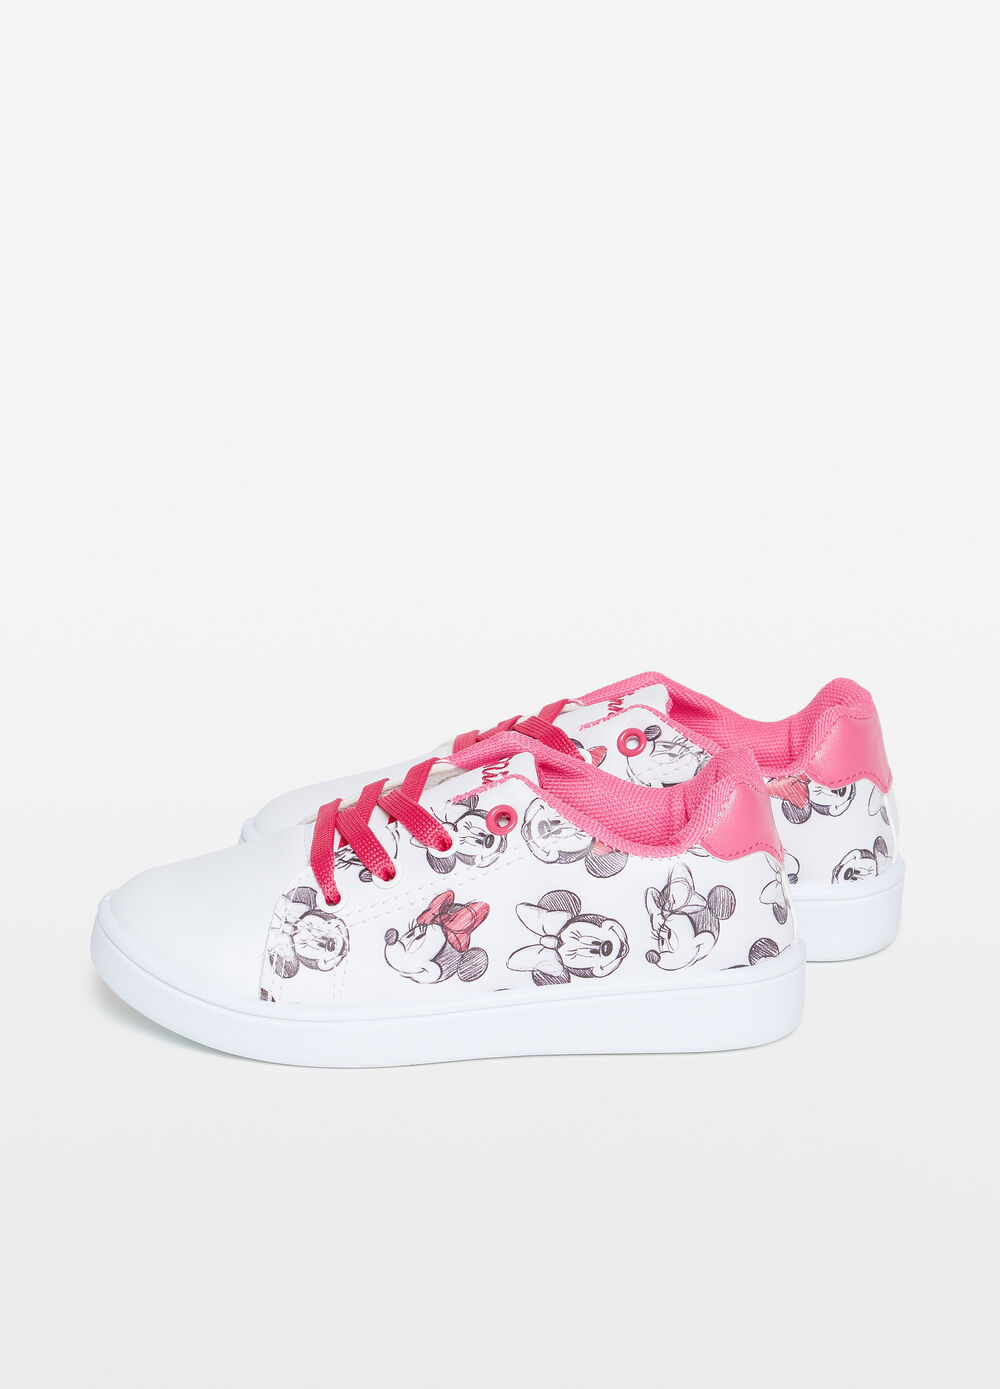 Patterned sneakers with Minnie embroidery